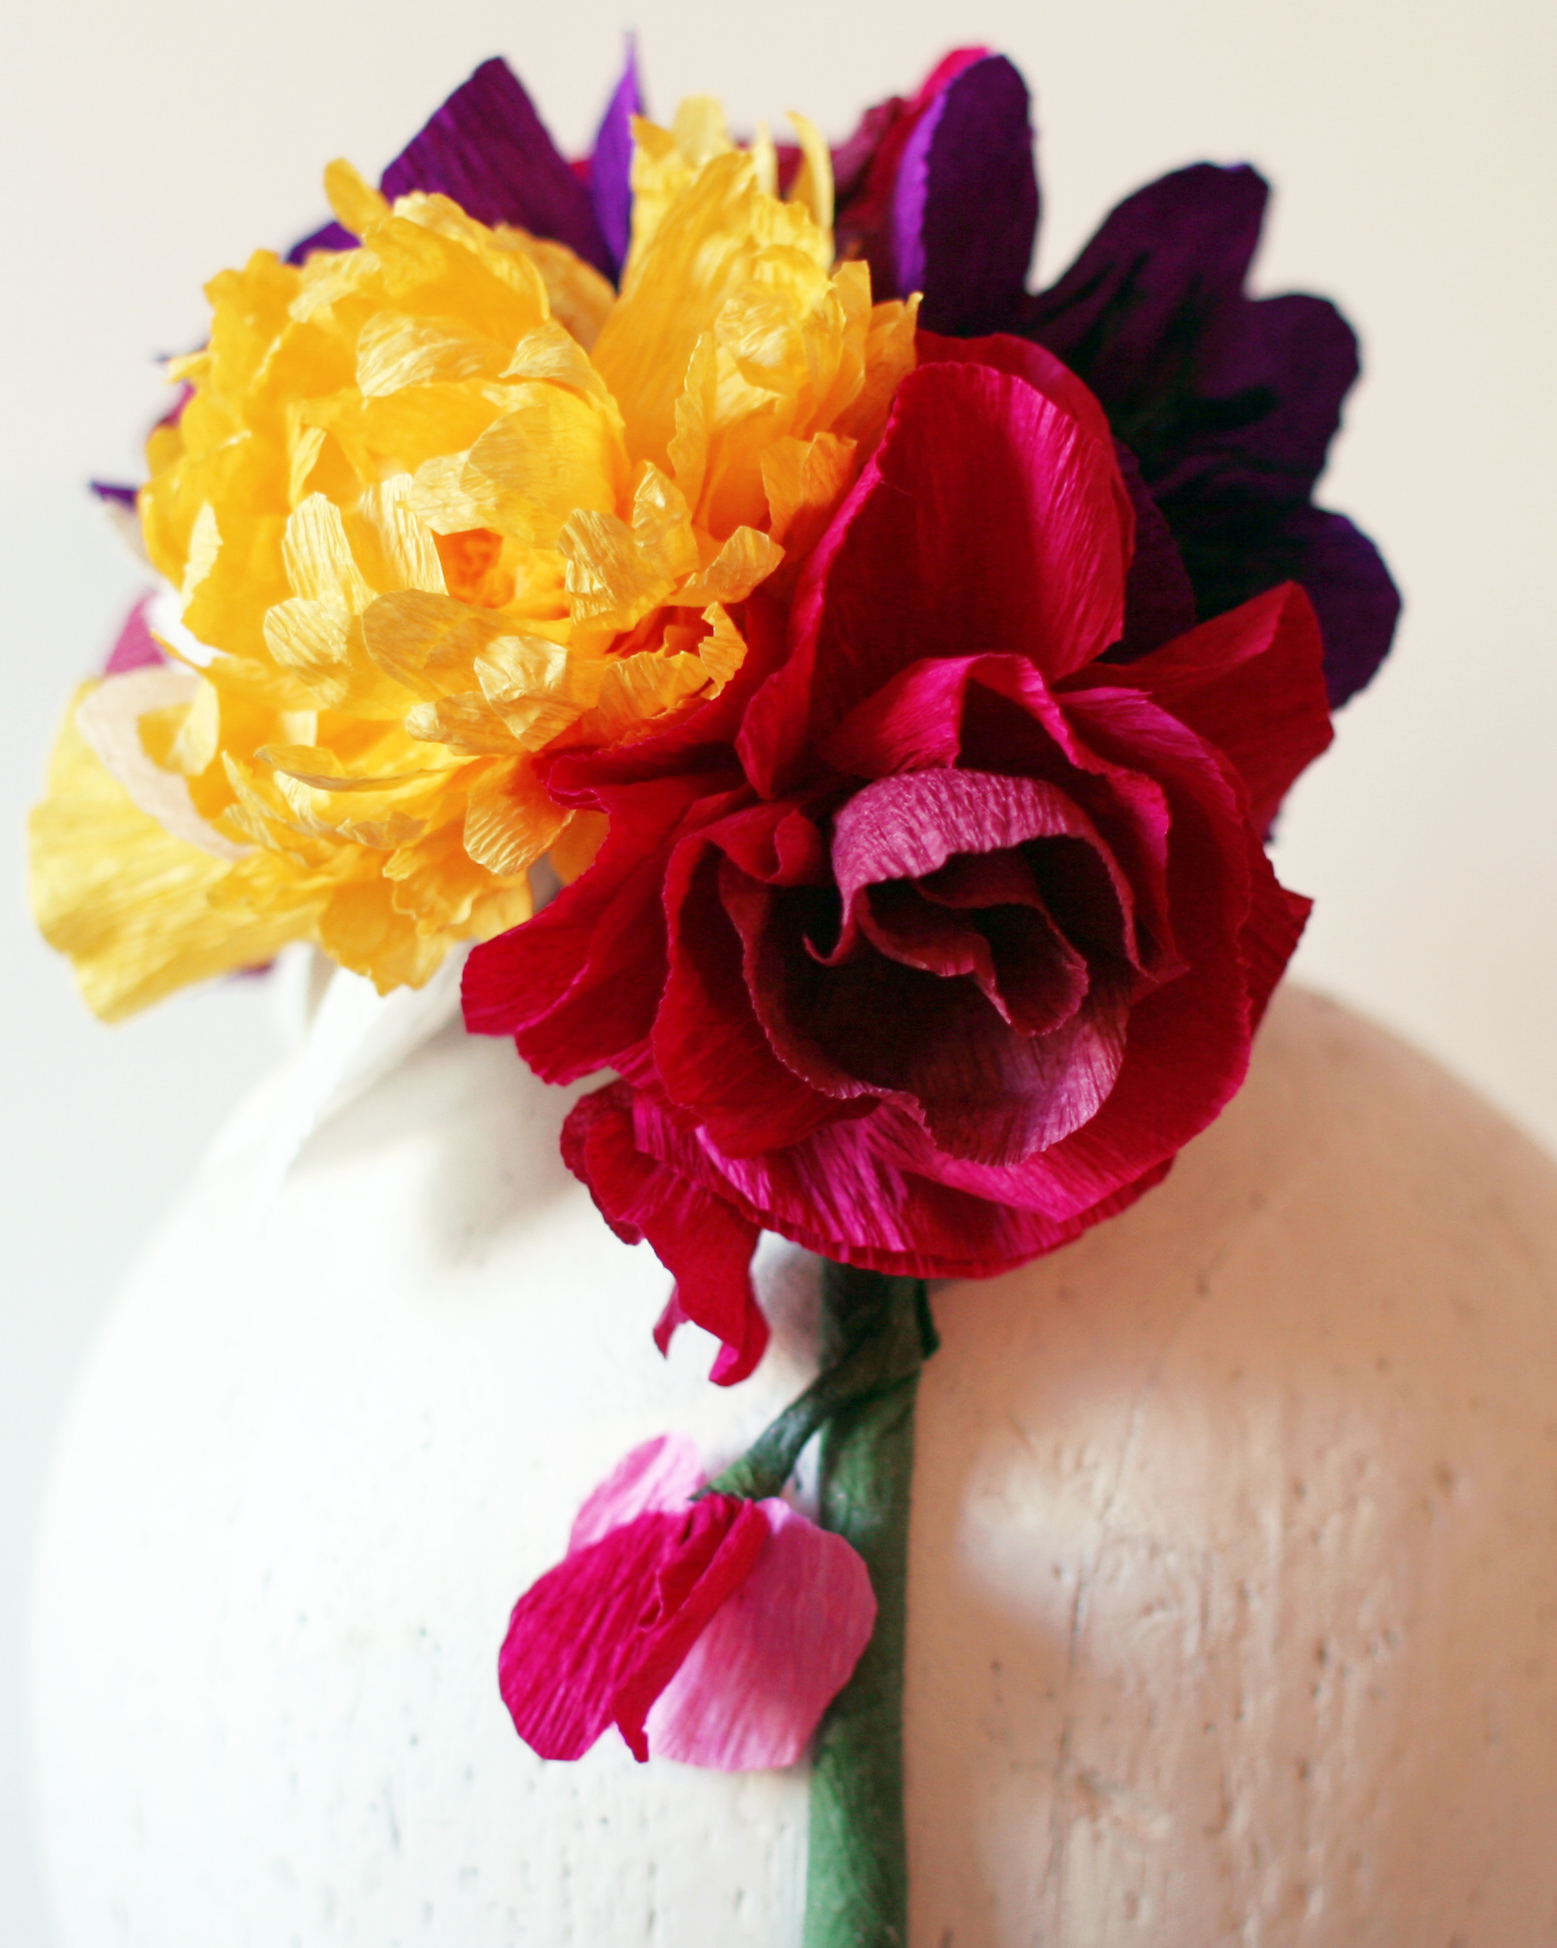 Diy crepe paper flower hat domesticspace for Crepe paper wall flowers